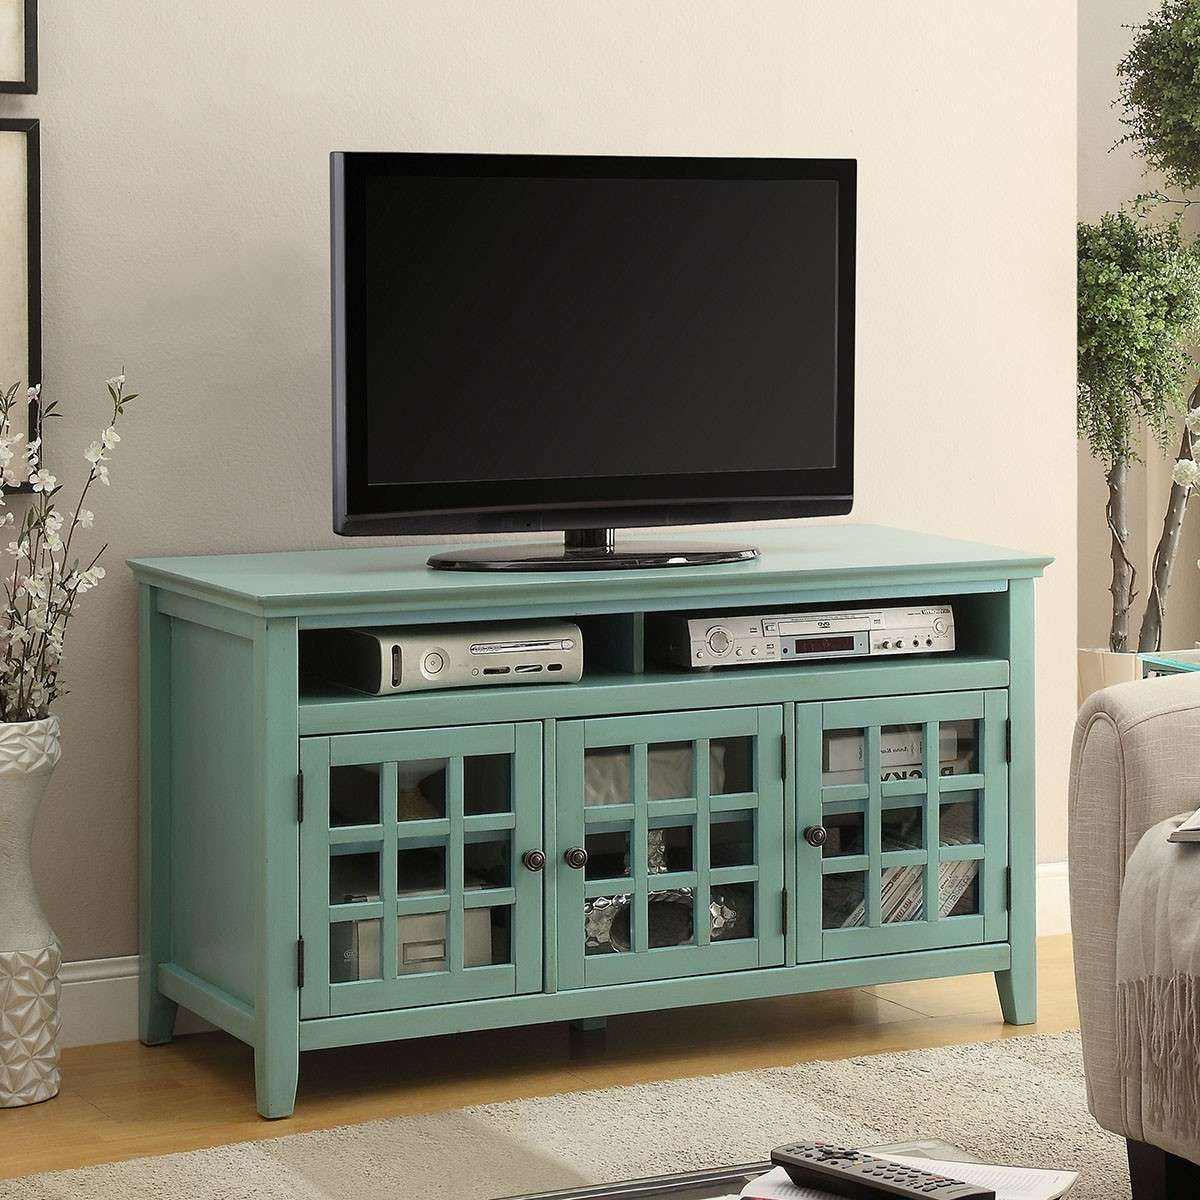 "Linon 650202trq01u Largo 48"" Antique Turquoise Media Cabinet Tv In Glass Fronted Tv Cabinets (View 3 of 20)"